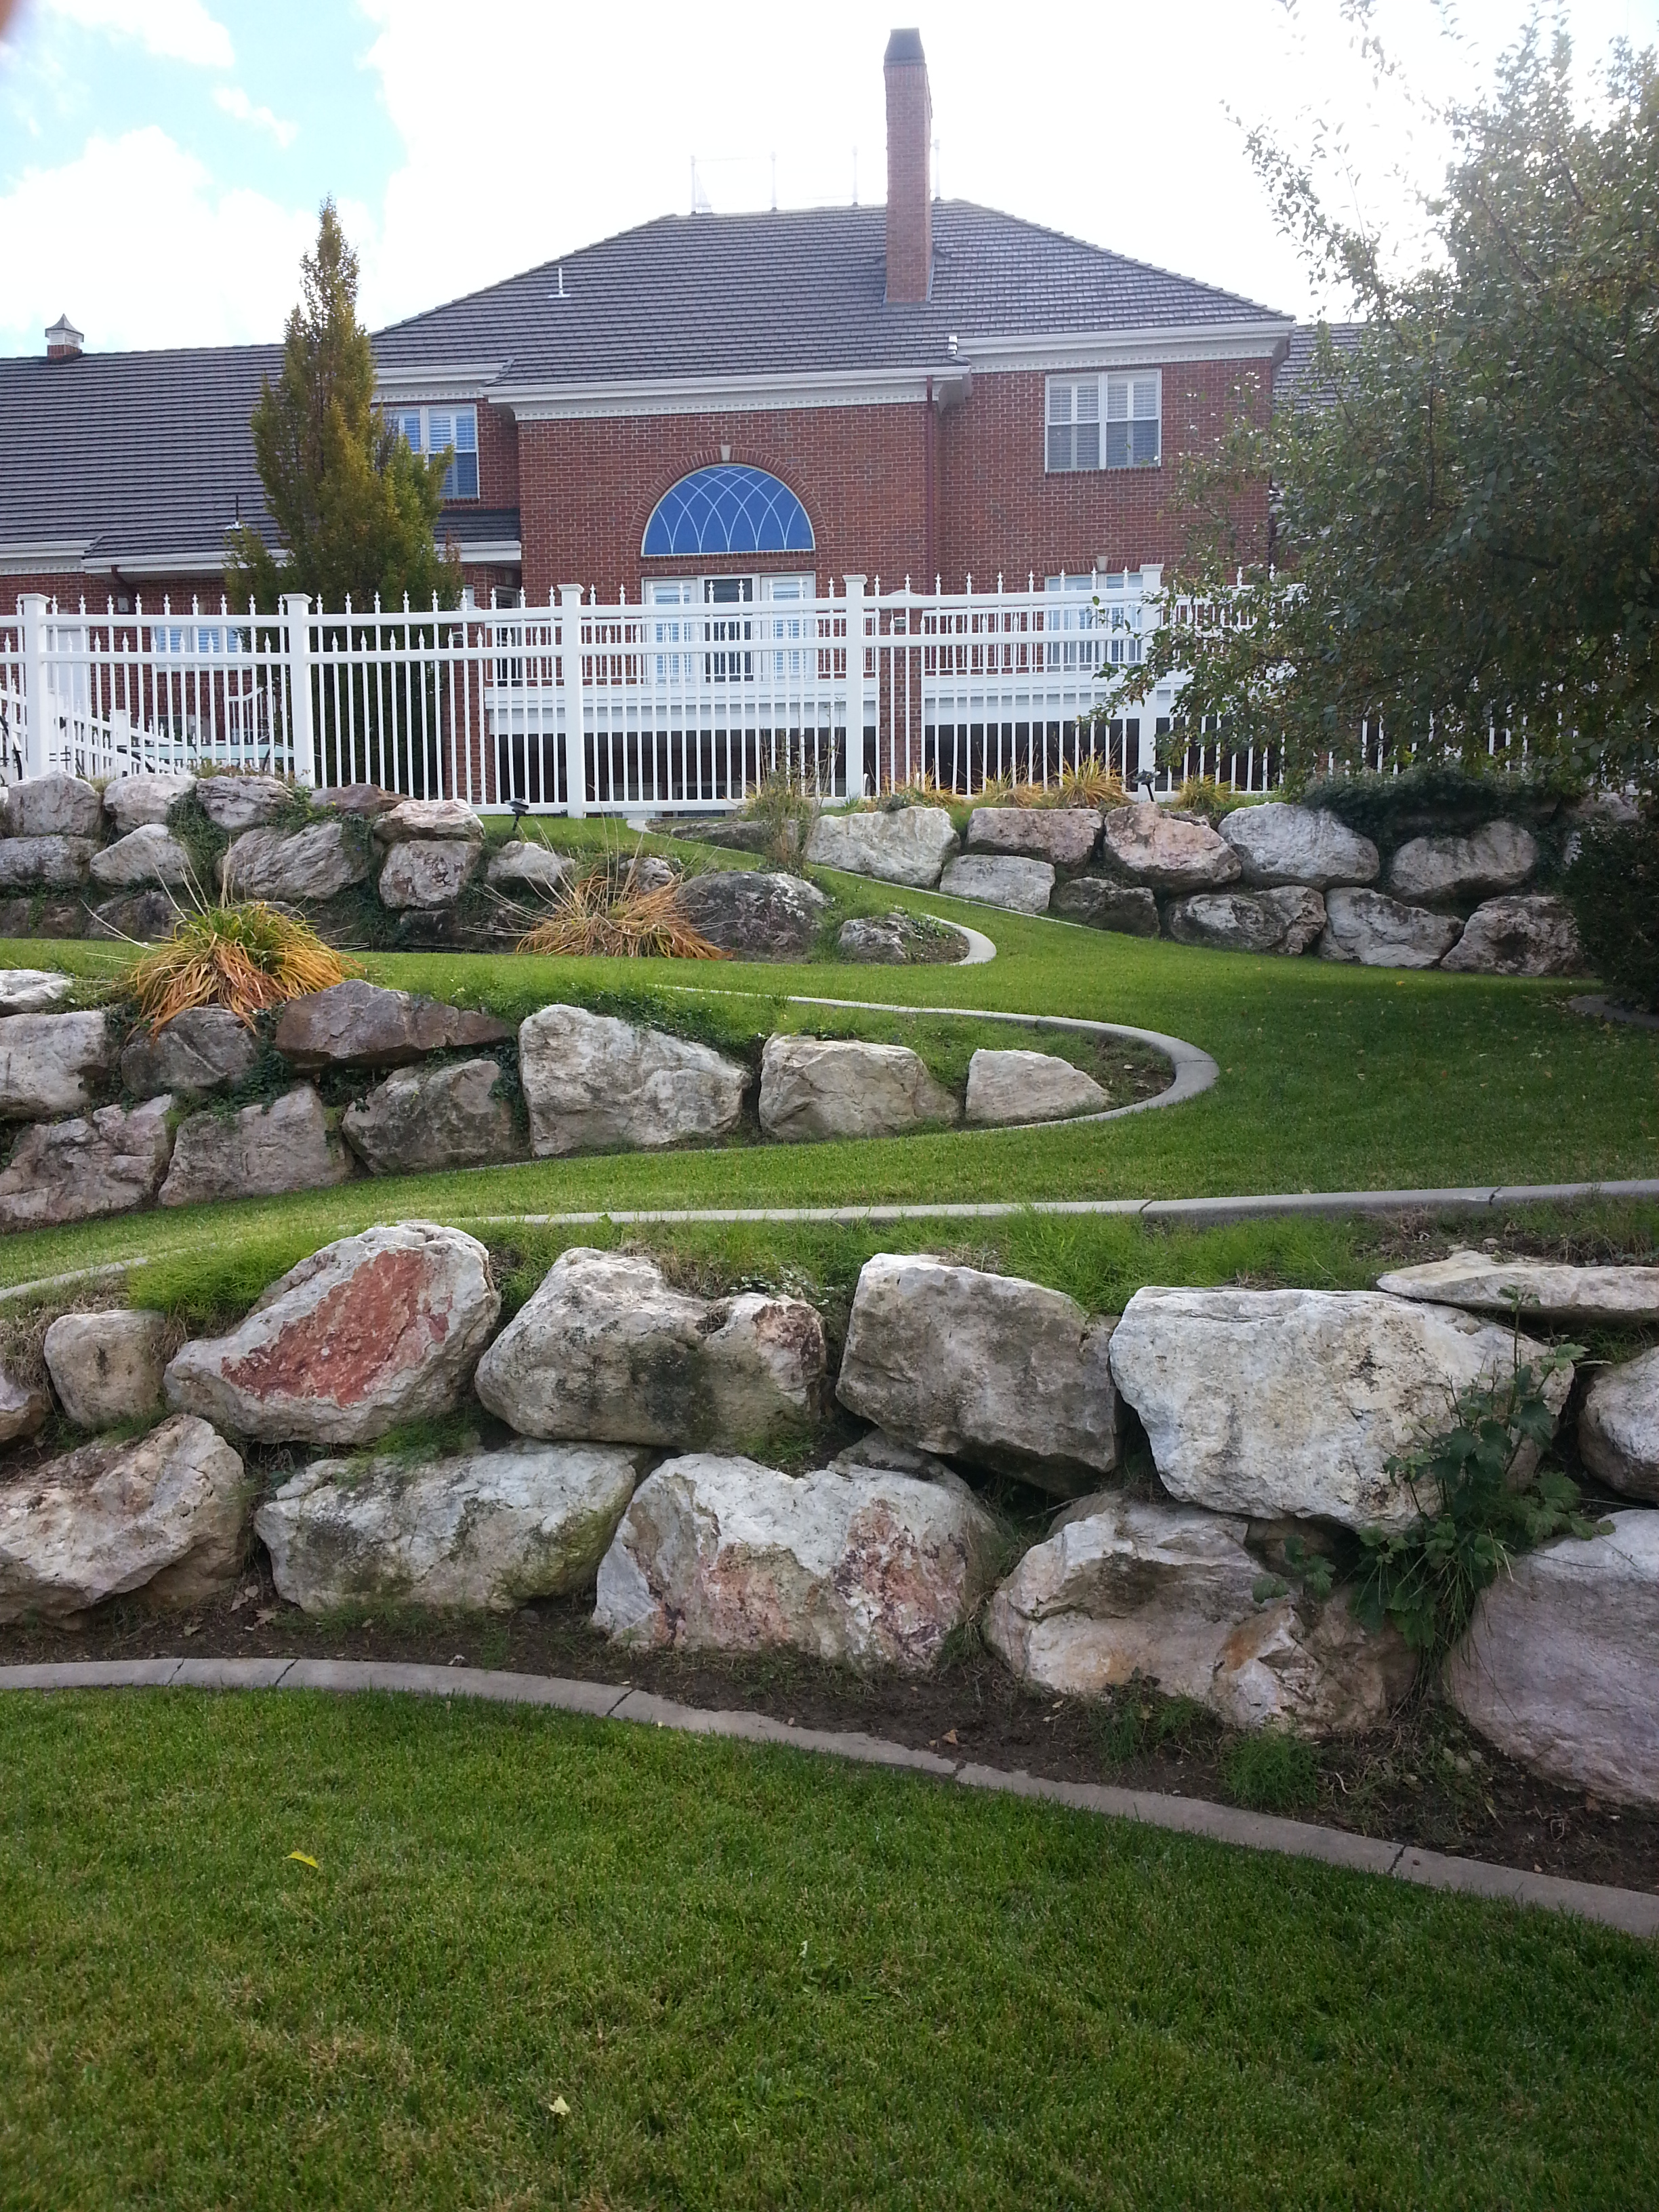 Utah Landscapers In Kaysville  Chris Jensen Landscaping. Front Doors. Interior Design Atlanta. Small Bathroom Mirror. Butcher Block Countertop Pros And Cons. Gray And White Rugs. Wrought Iron Banister. Leaded Glass Doors. Window Treatments For Sliding Glass Door